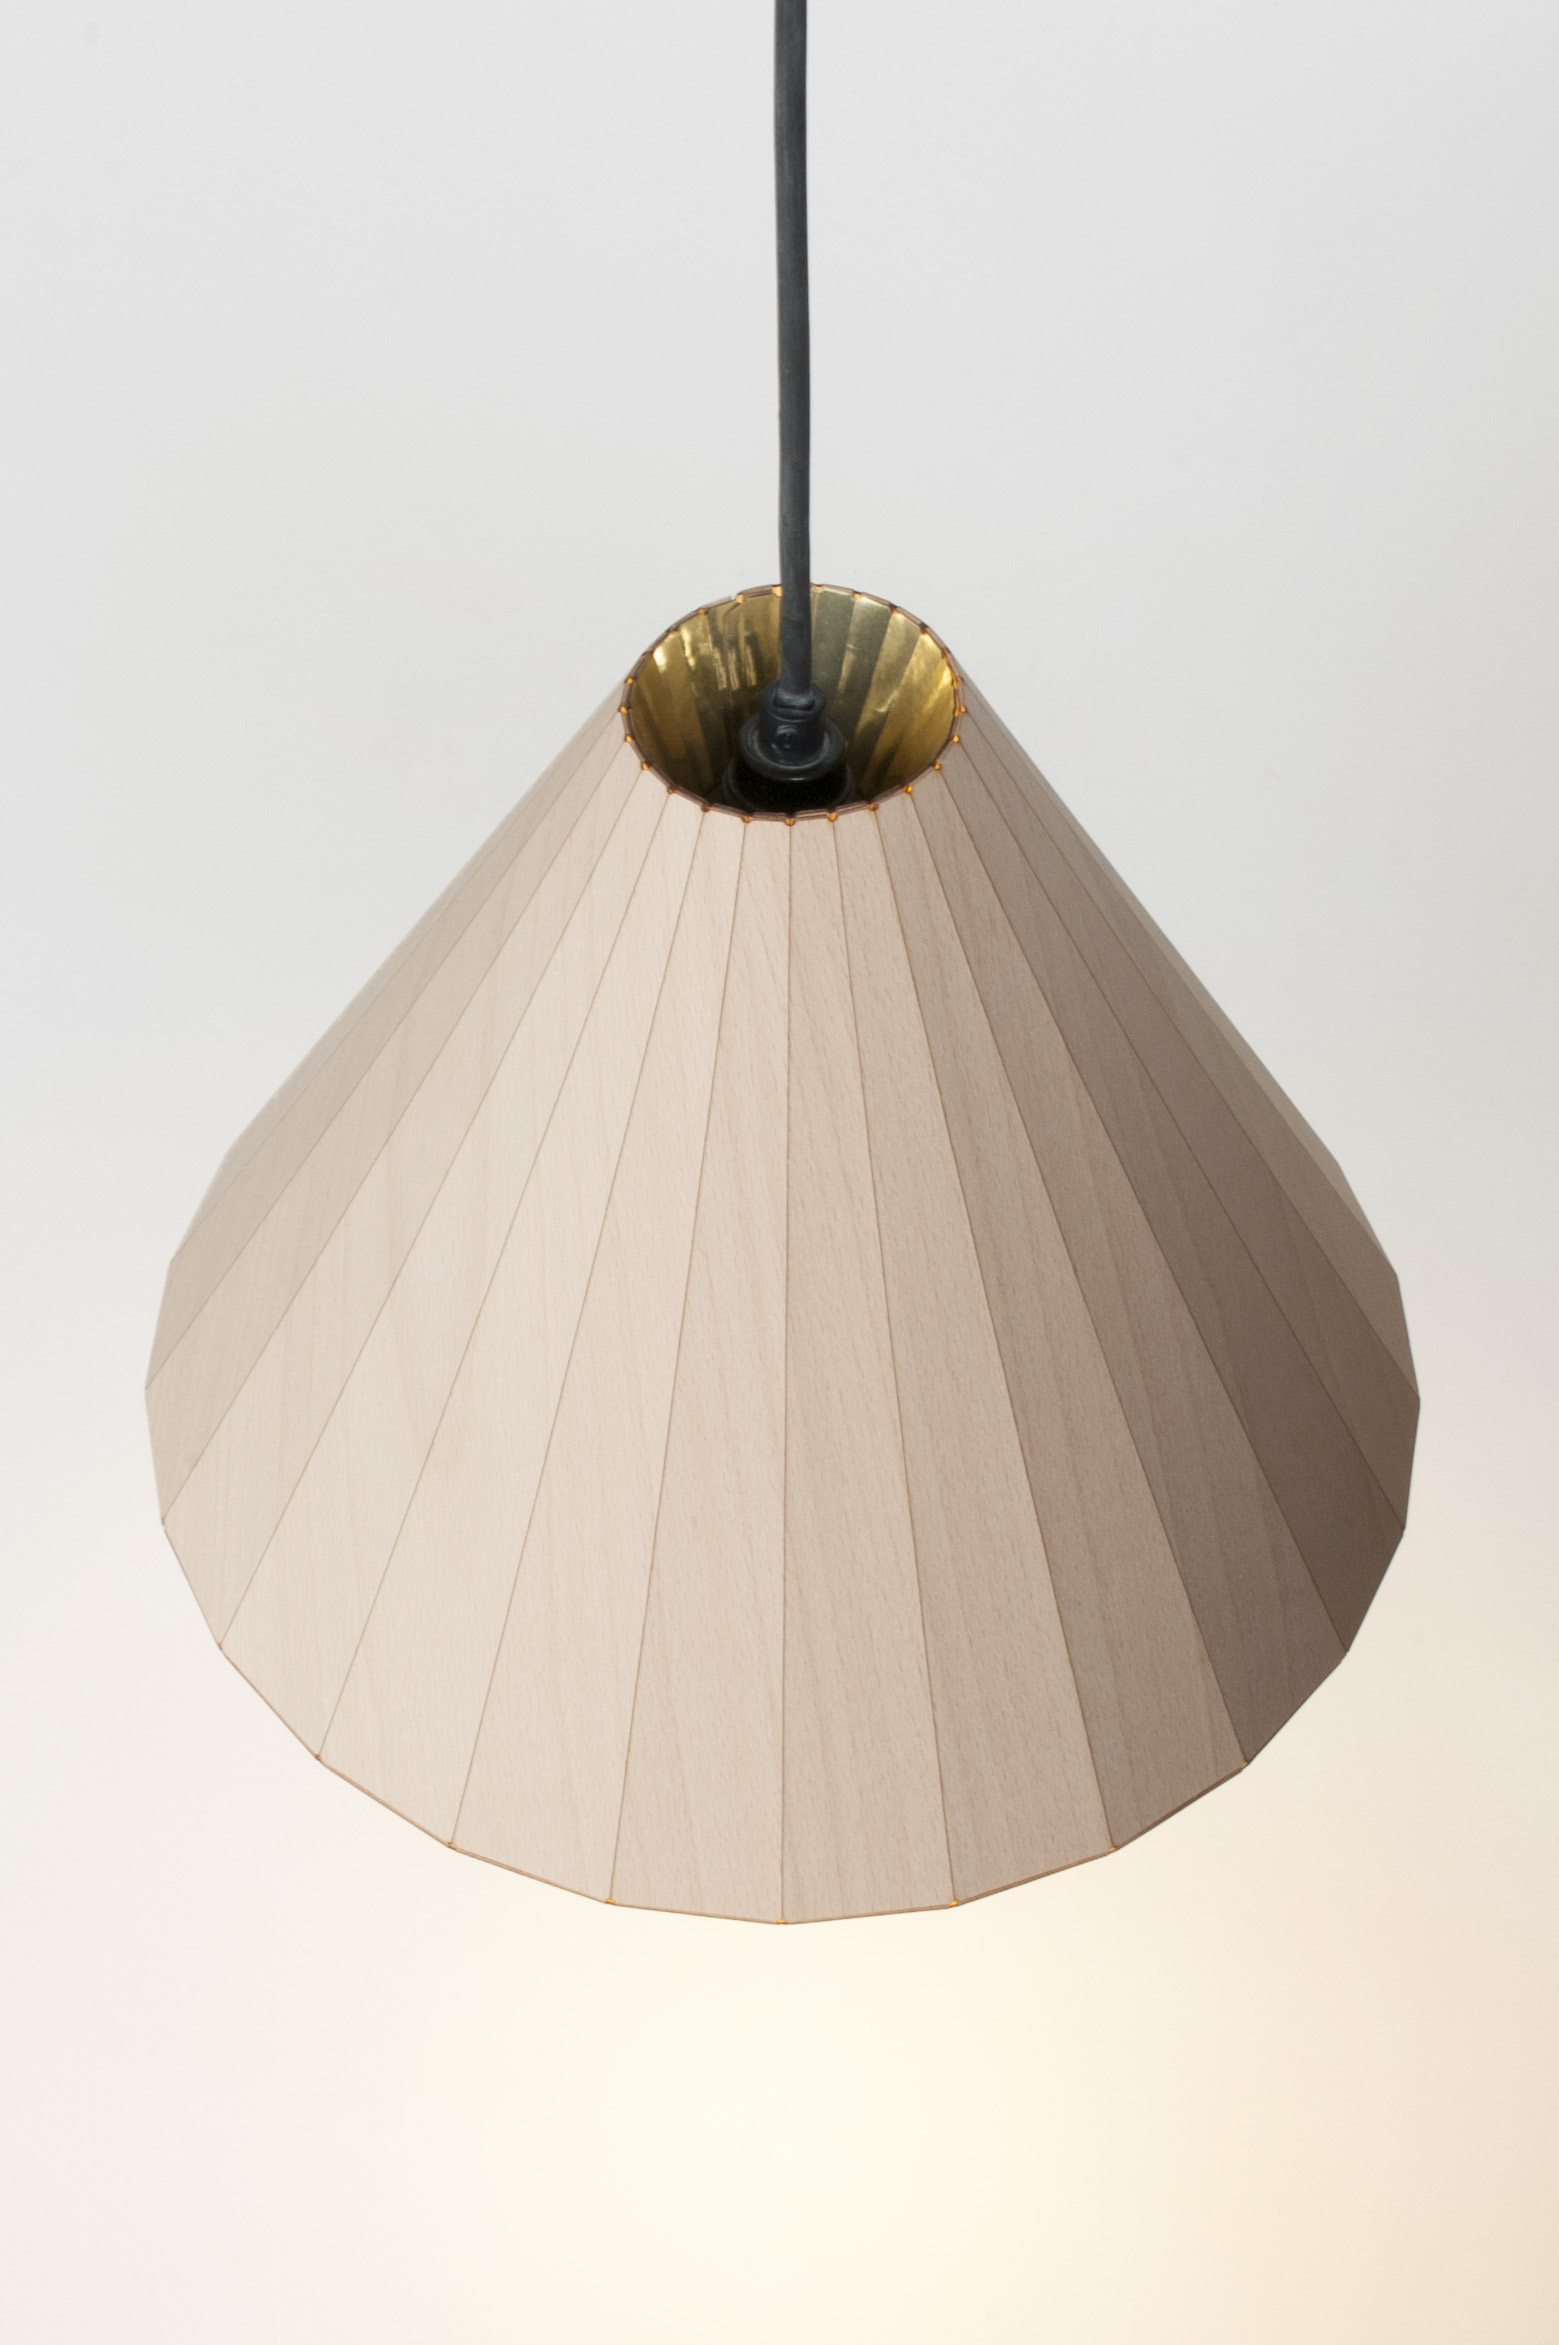 Wooden_Light-High-DavidDerksenDesign-HIGH RES.jpg